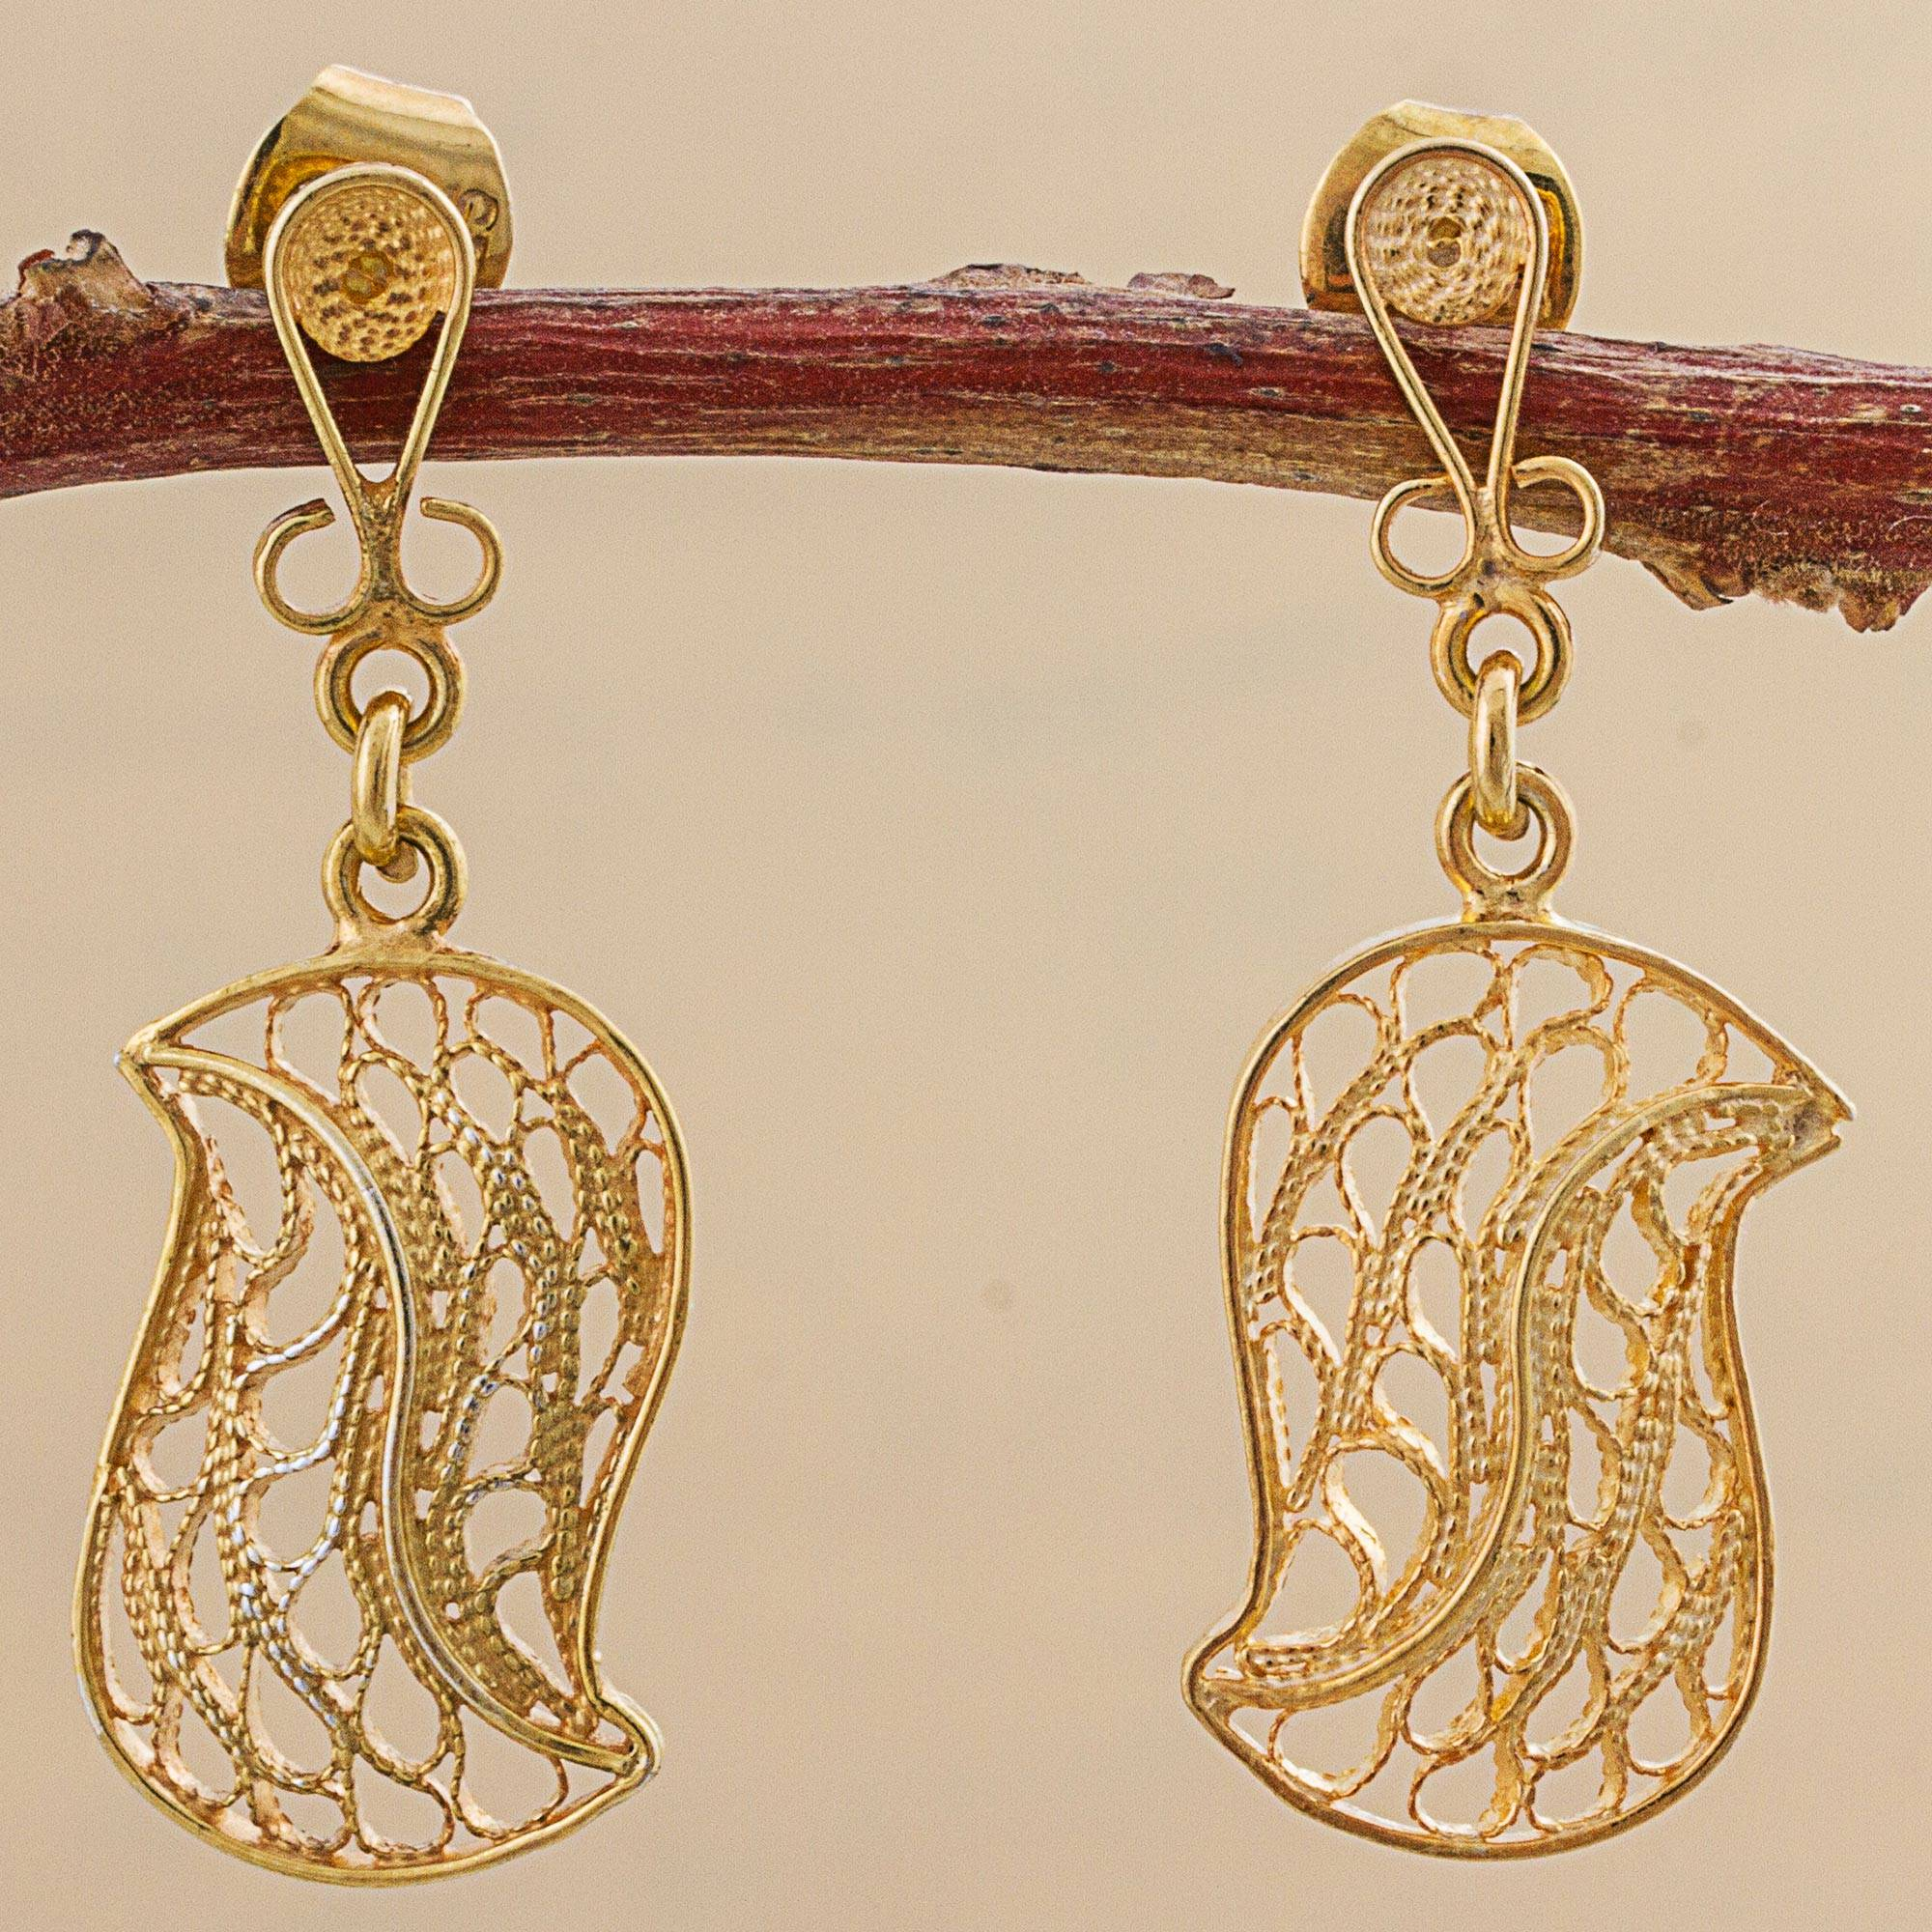 a34a40ed0 Gold Plated Sterling Silver Dangle Earrings from Peru - Regal Leaf ...